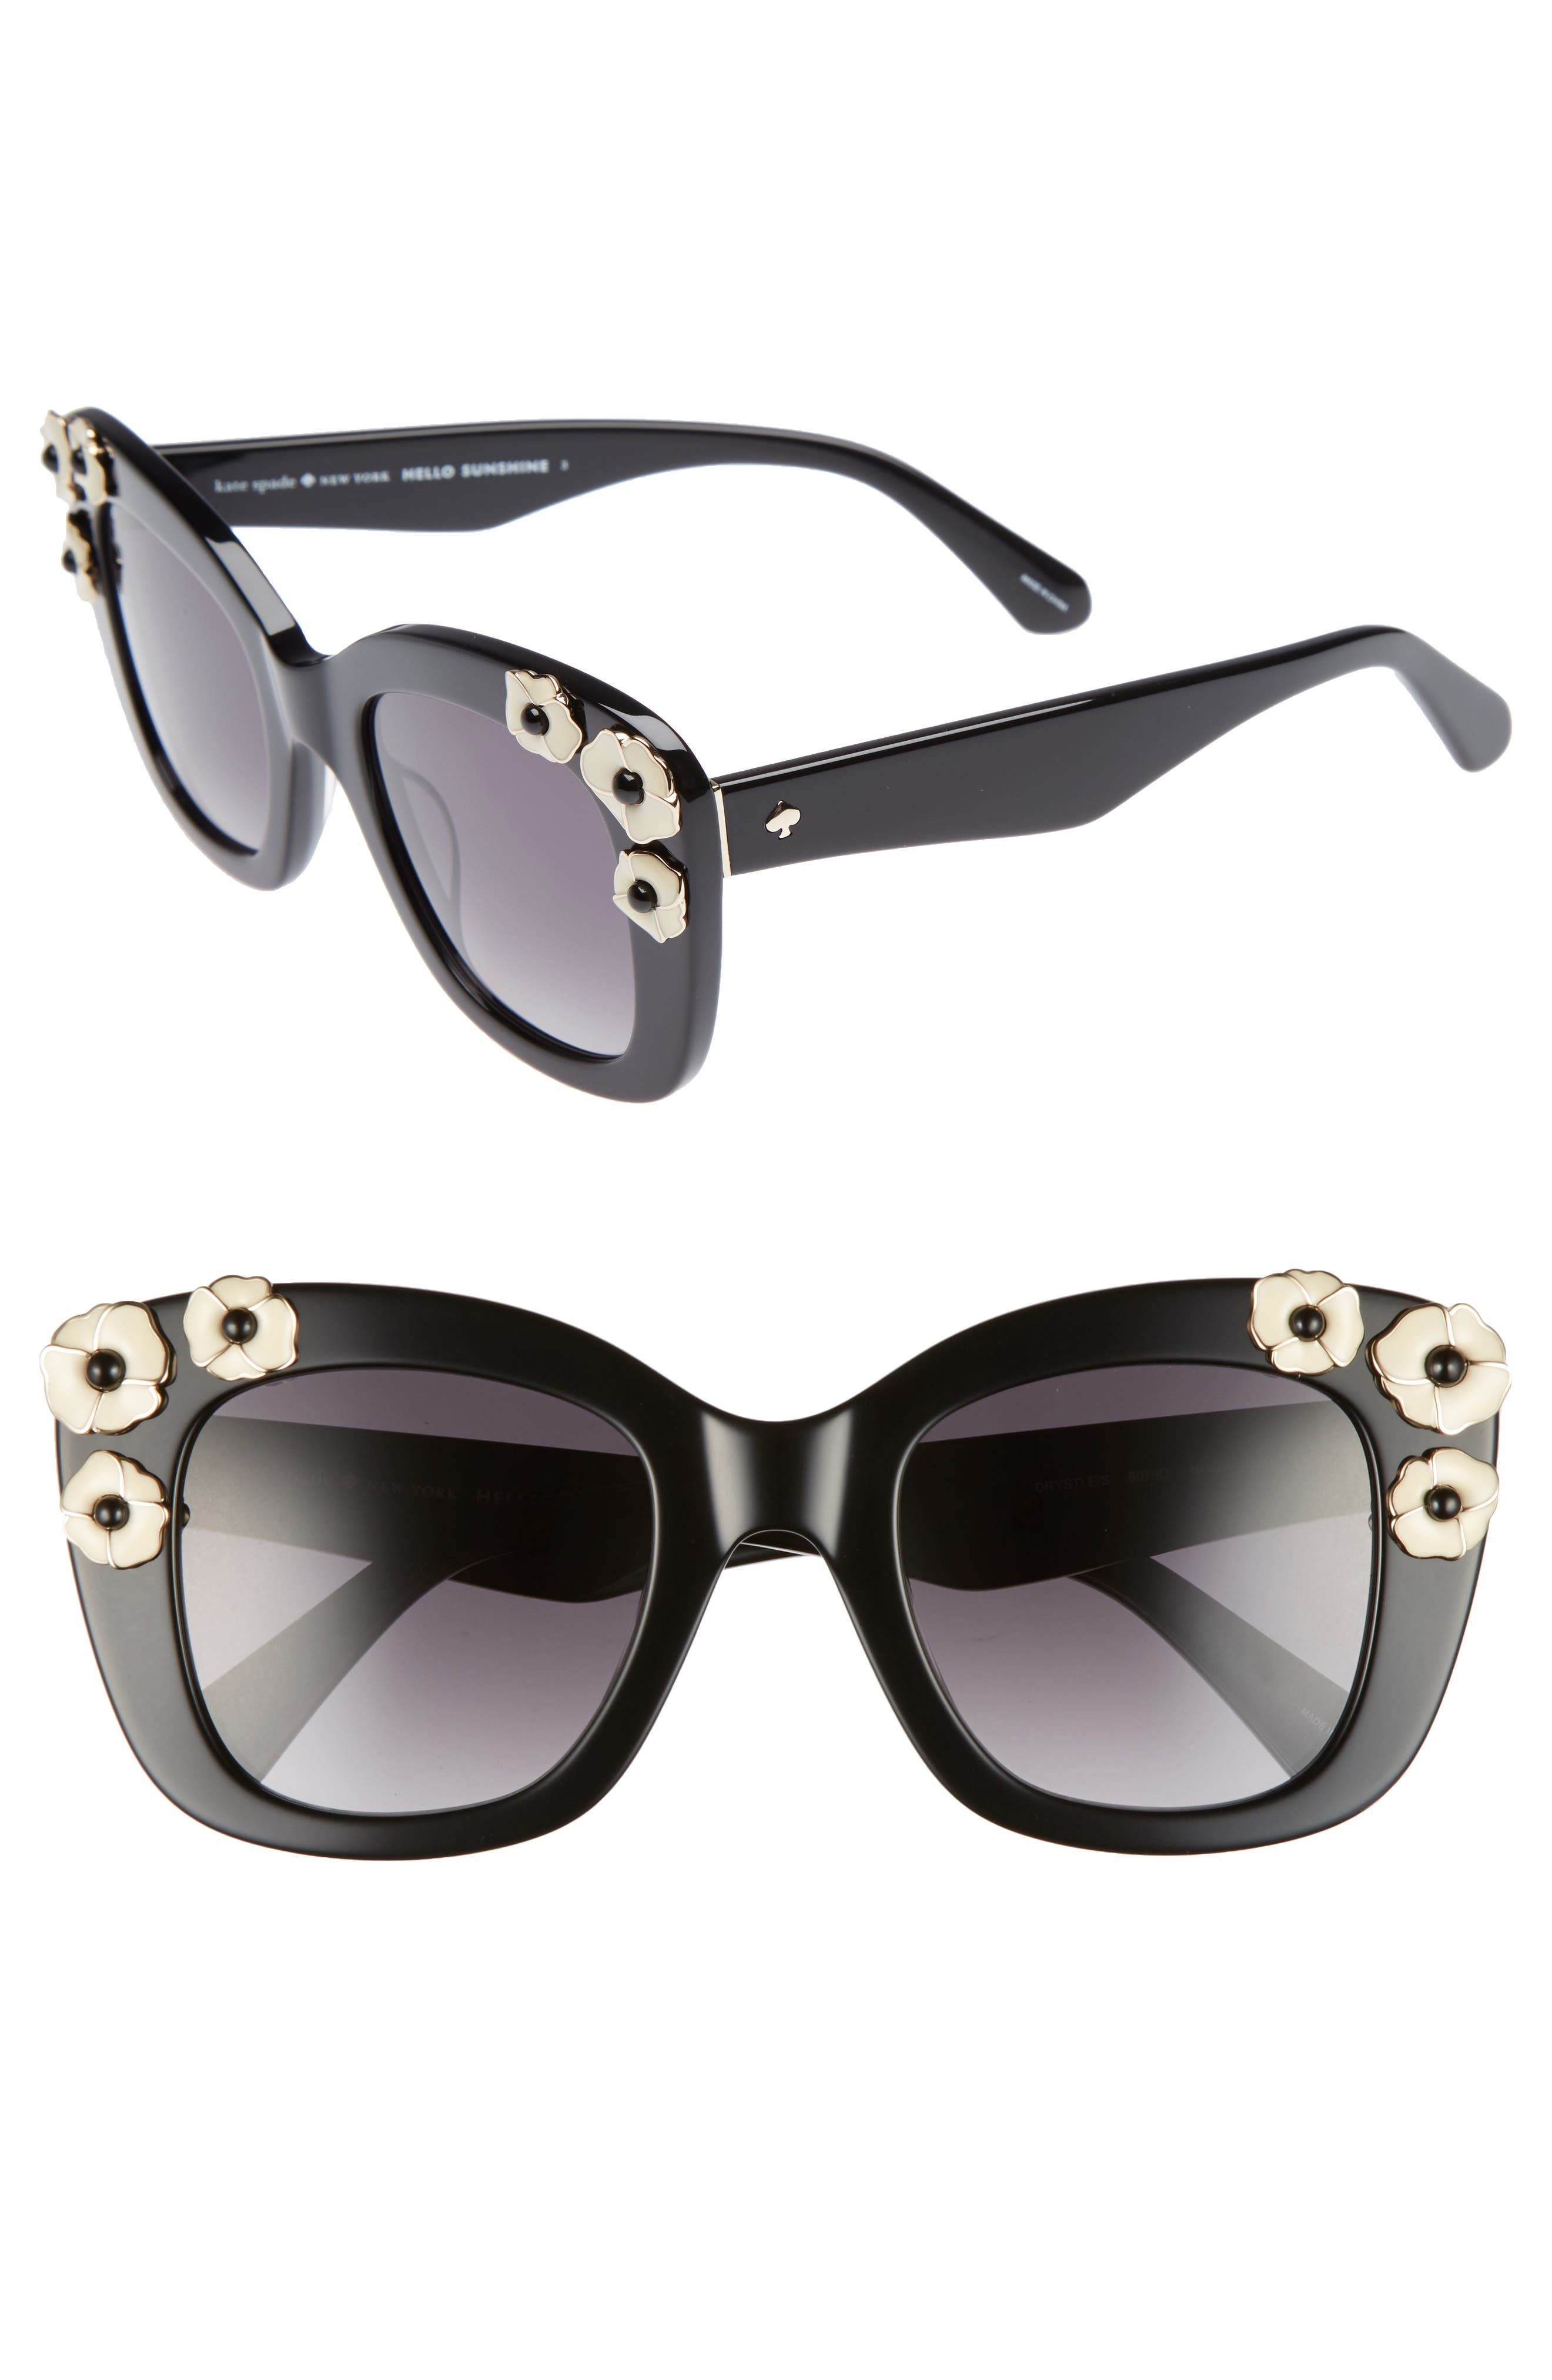 kate spade drystle 49mm floral embellished square sunglasses,                             Main thumbnail 1, color,                             Black